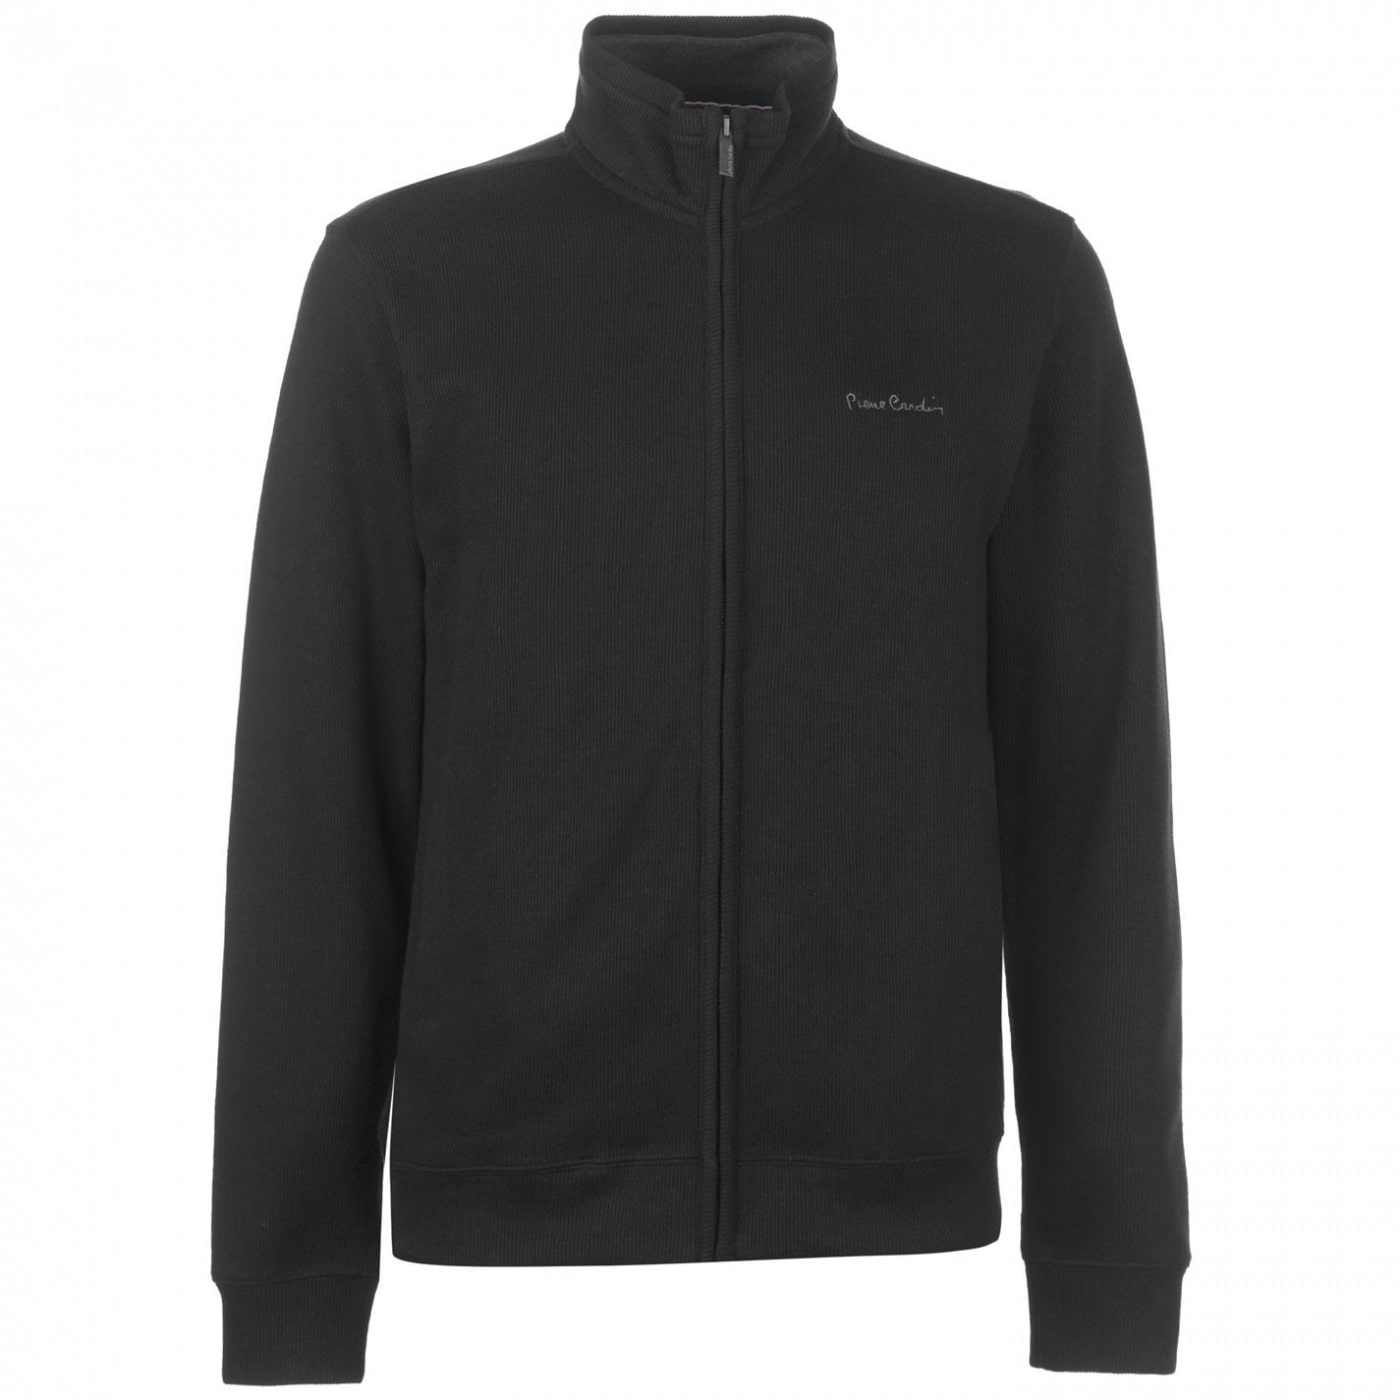 Pierre Cardin Full Zip Ribbed Knit Mens